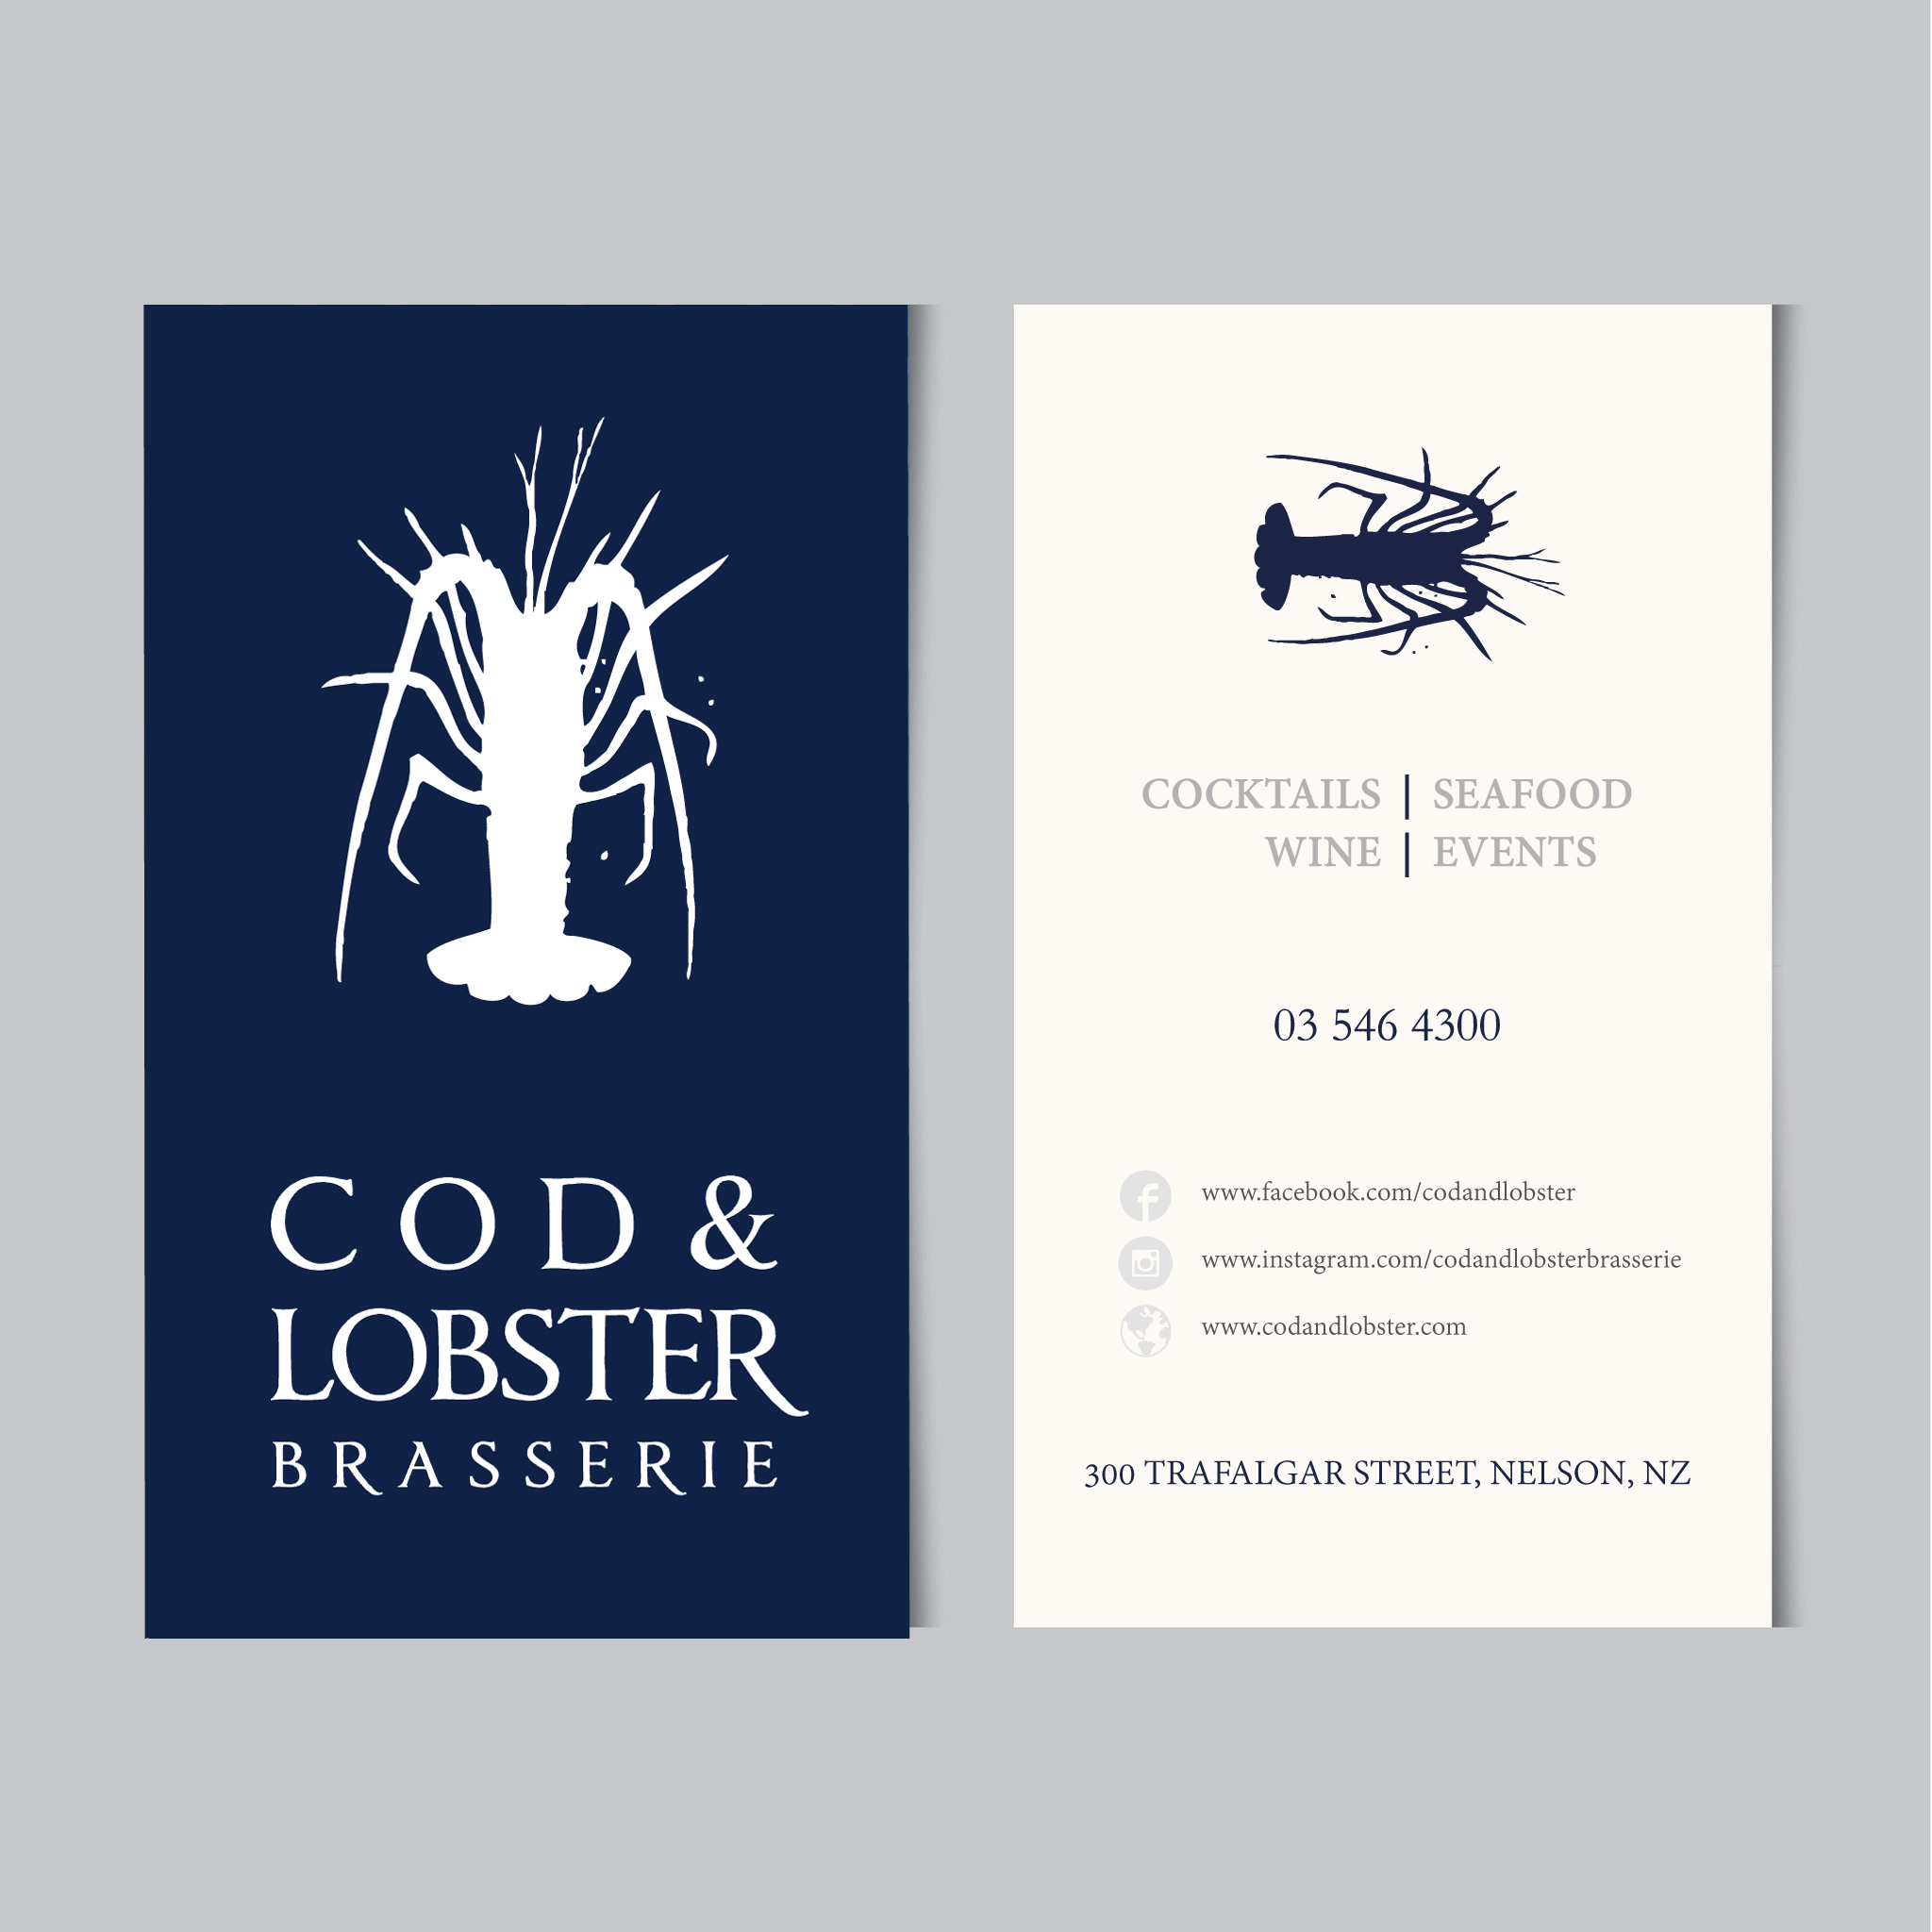 cod and lobster  business card design and print